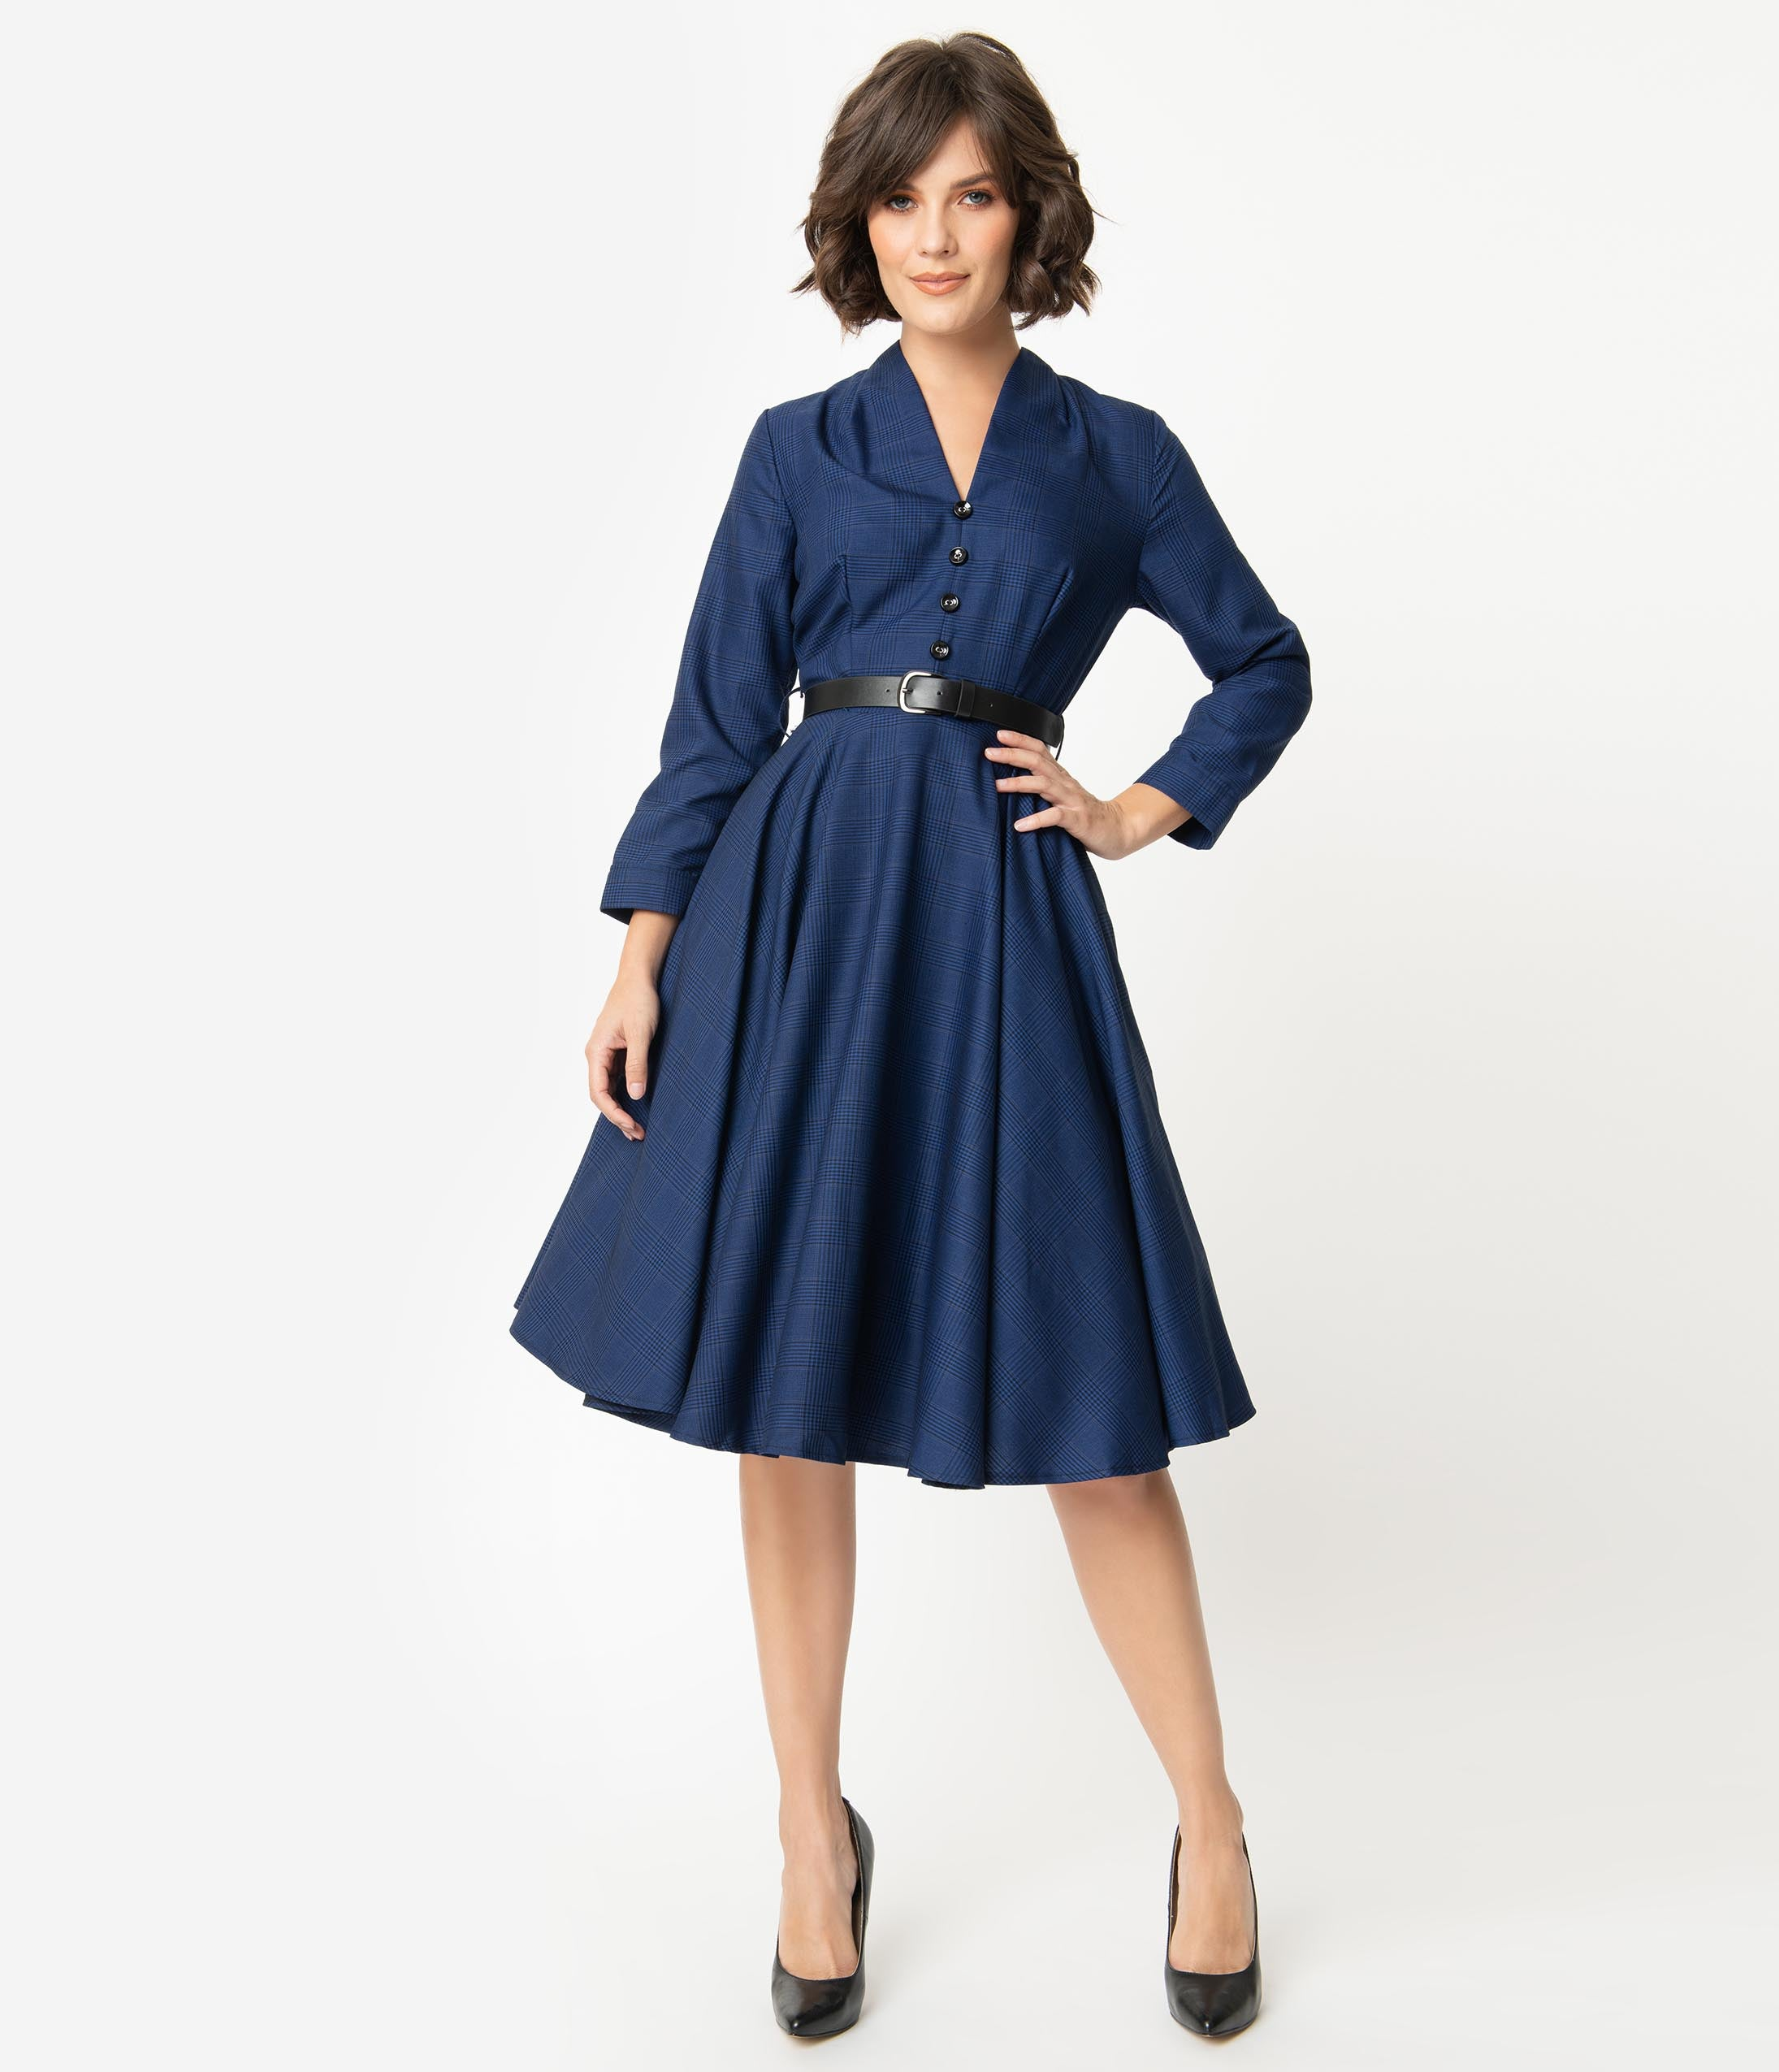 1950s Dresses, 50s Dresses | 1950s Style Dresses 1950S Style Navy Glen Check Long Sleeve Helena Swing Dress $98.00 AT vintagedancer.com